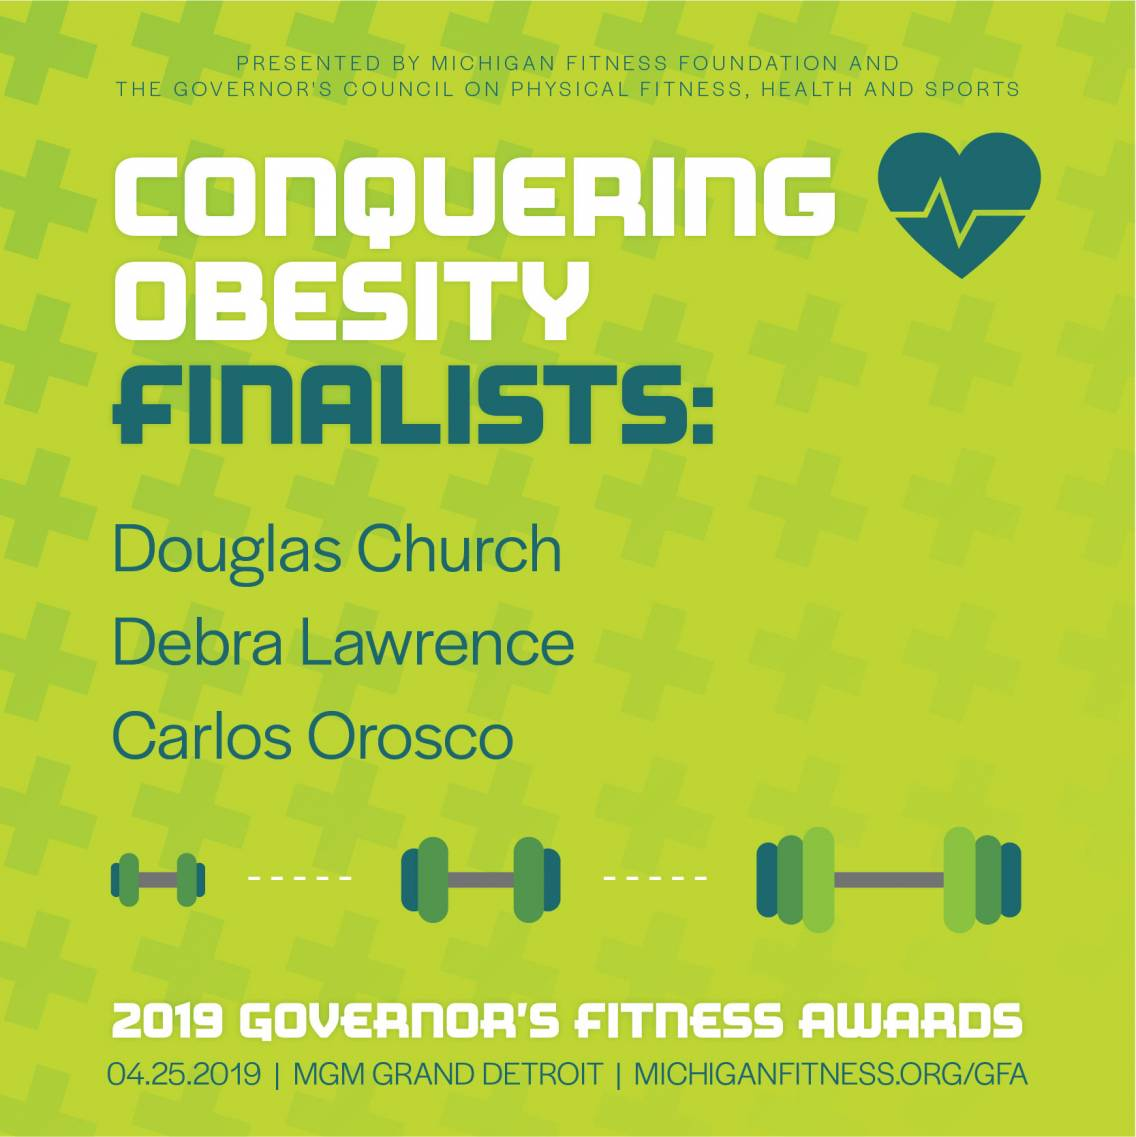 Governor's Fitness Awards - Conquering Obesity Finalists